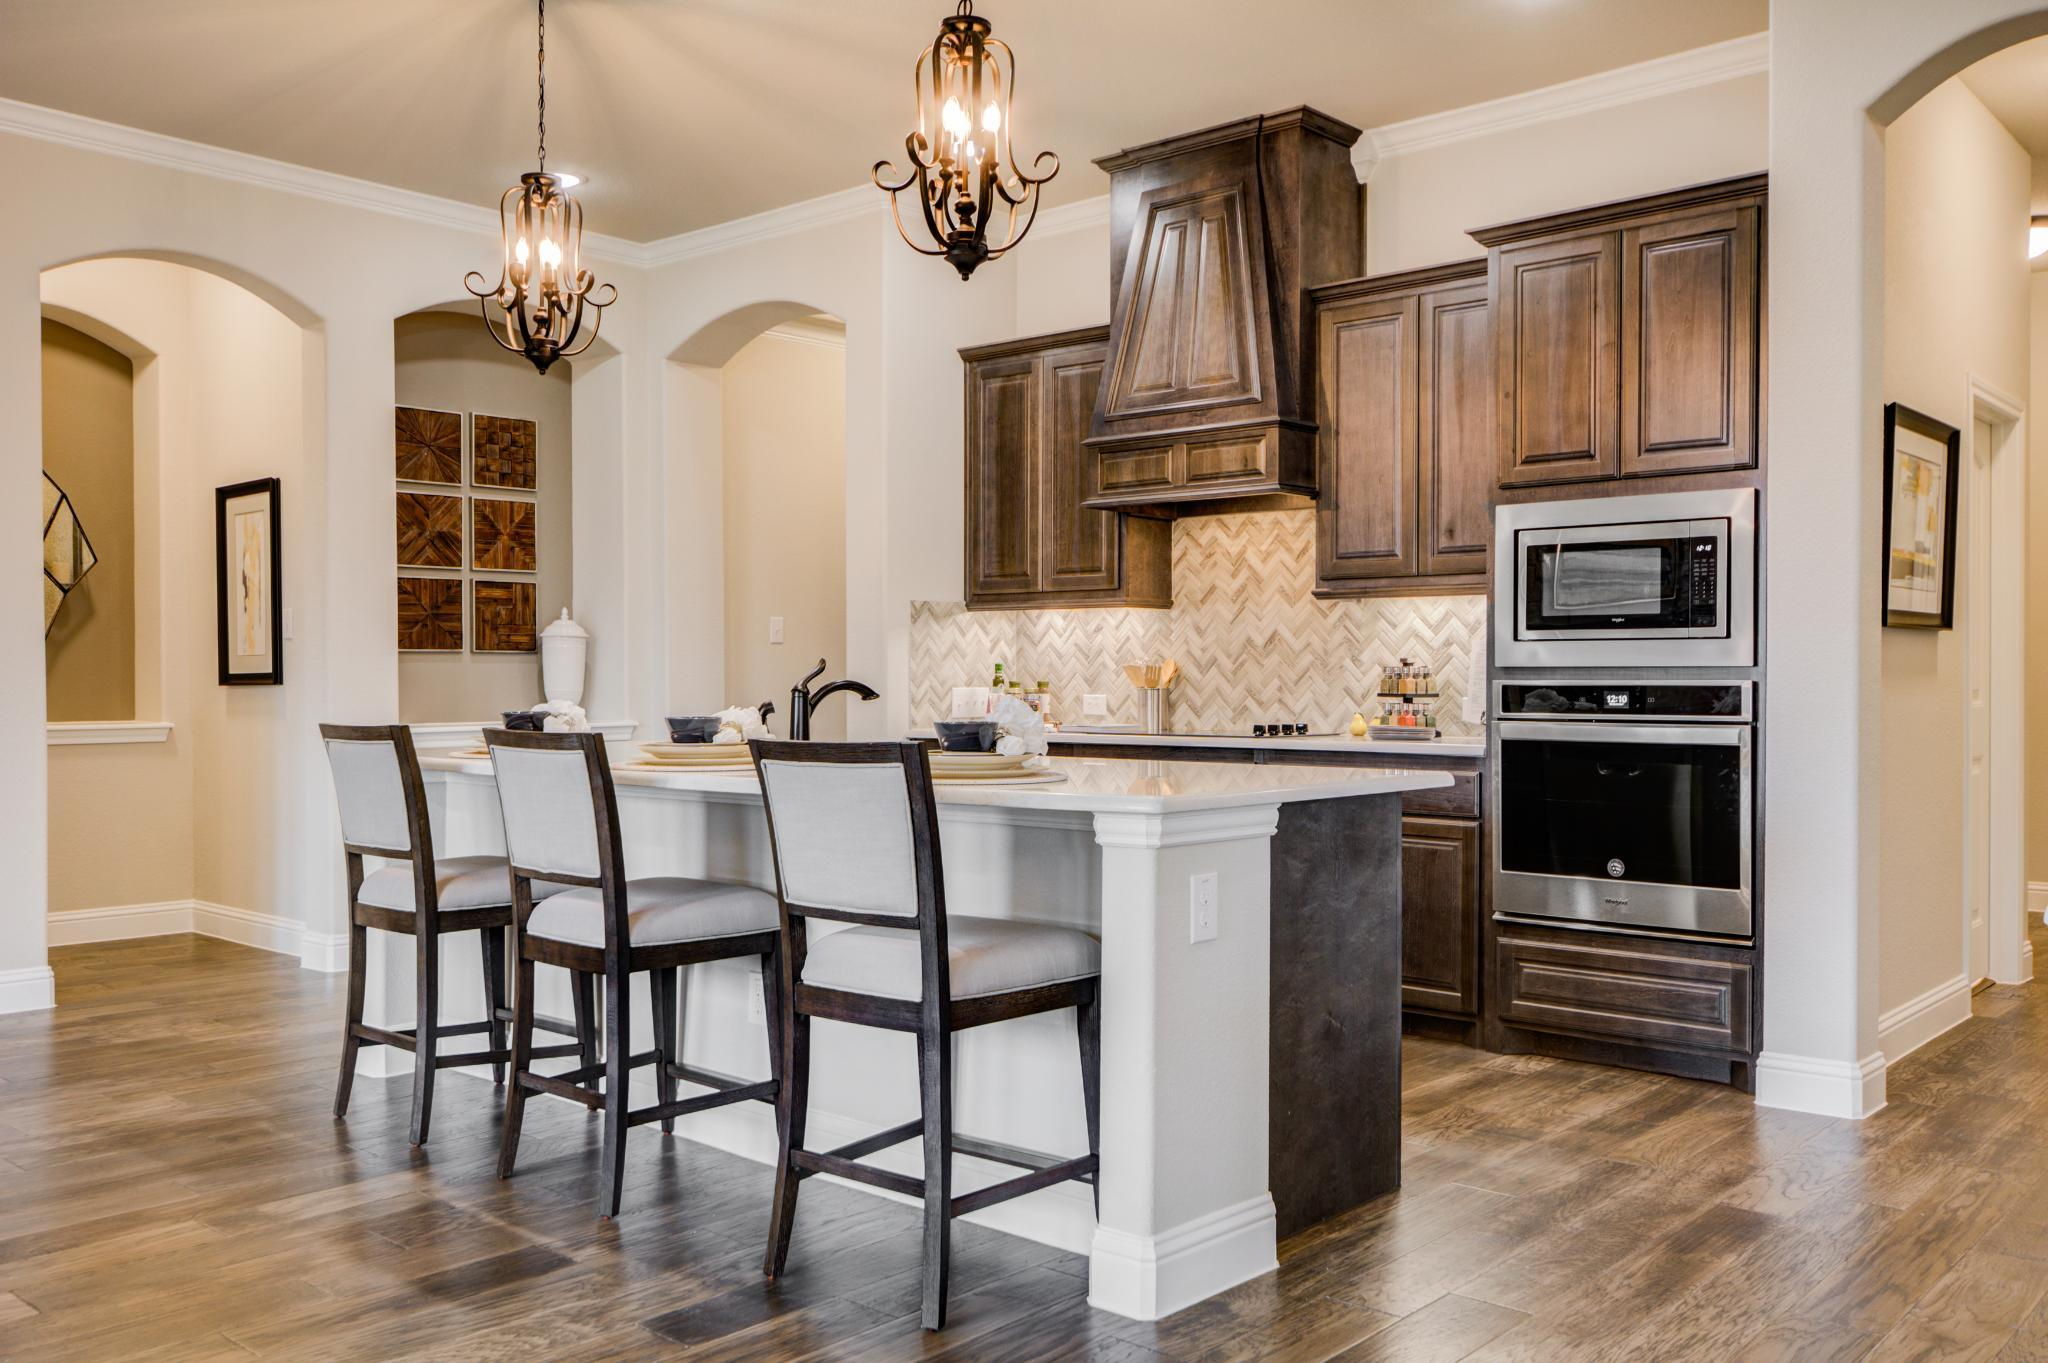 'Timber Creek Estates' by Antares Homes in Fort Worth